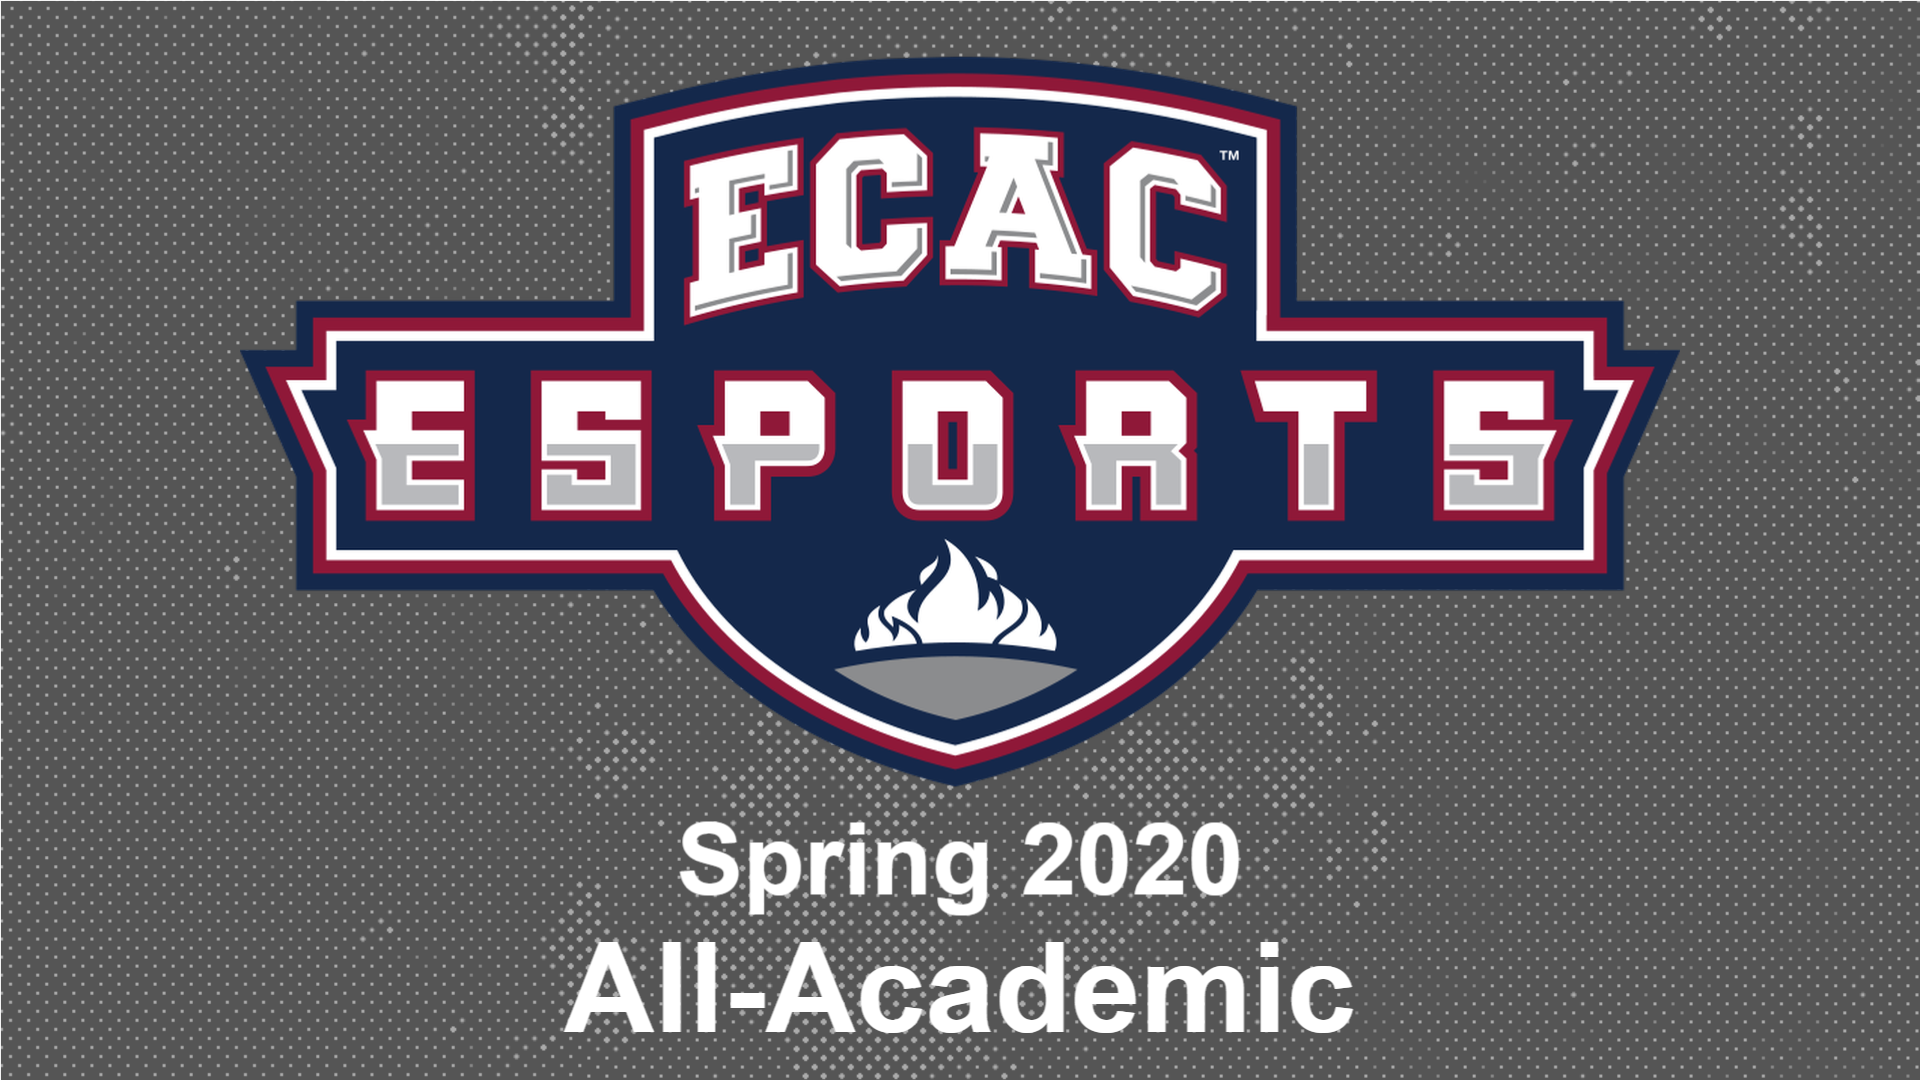 Eight Saints Named ECAC Esports Spring 2020 All-Academic